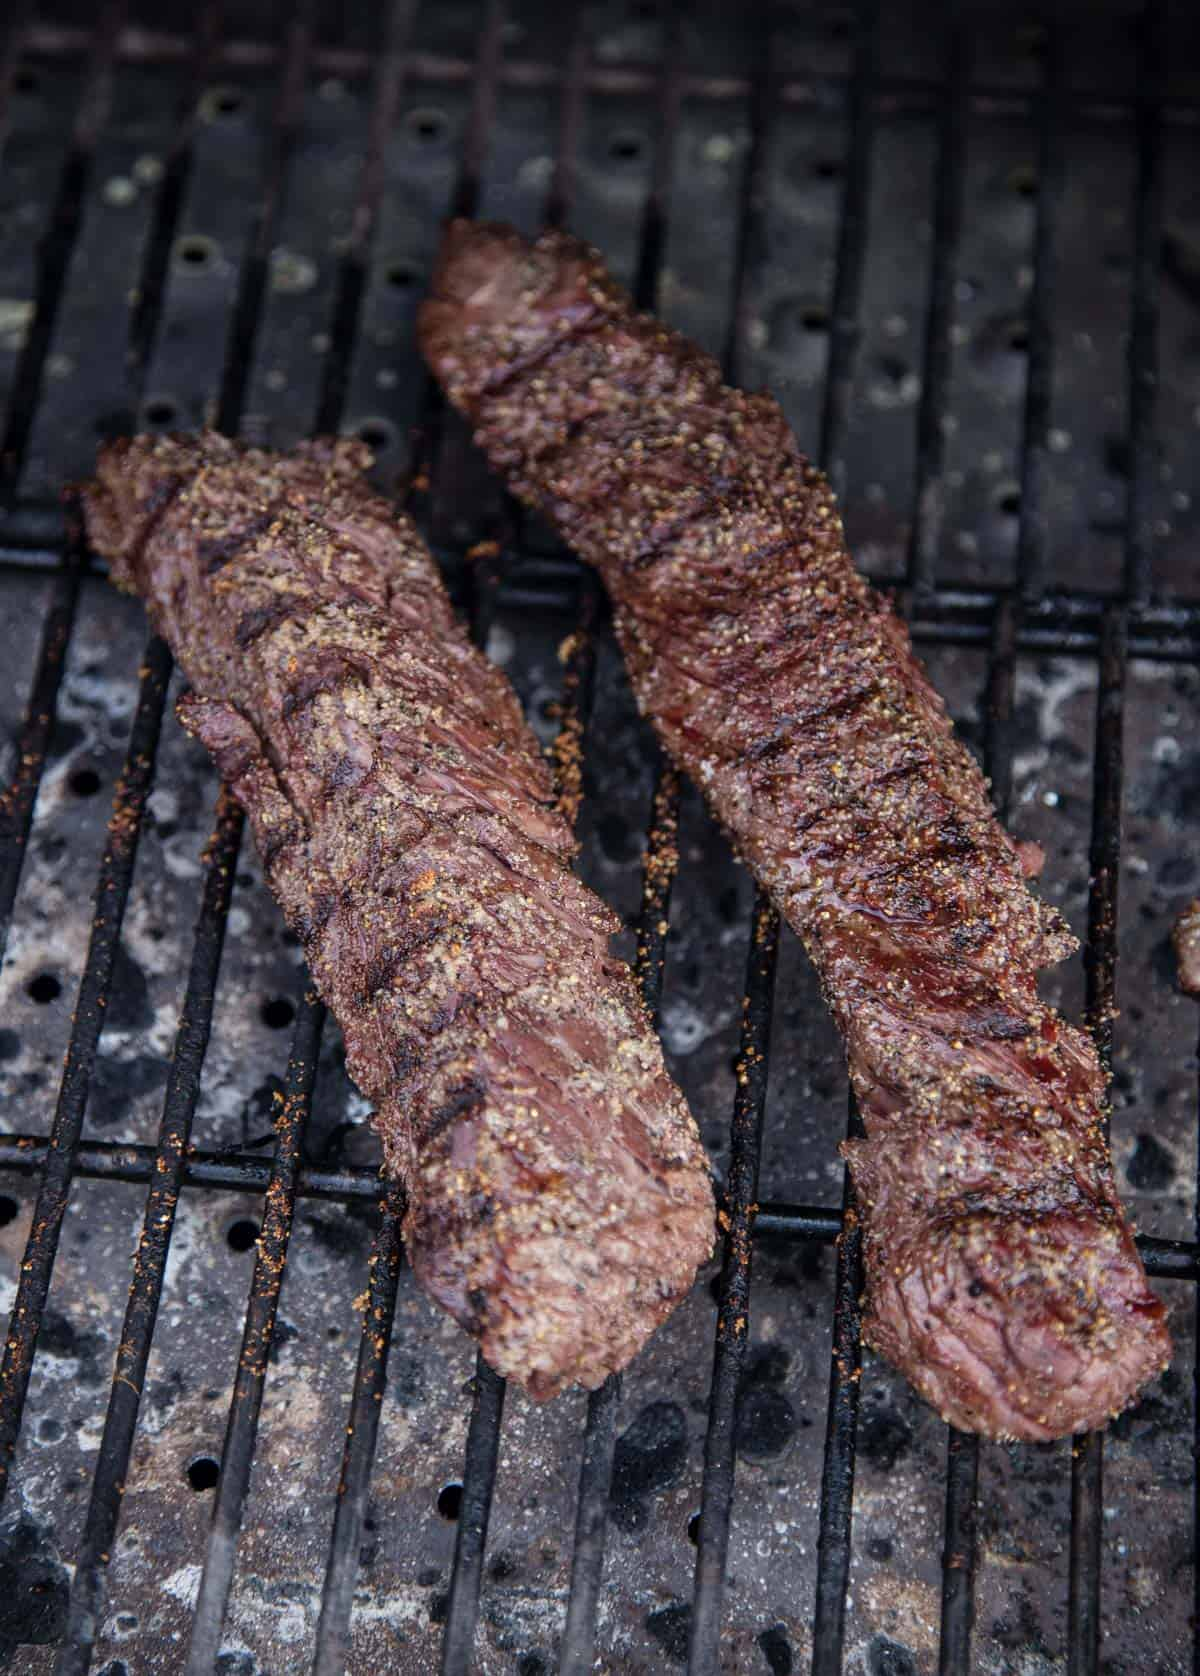 2 Hanger Steaks cooking on a grill